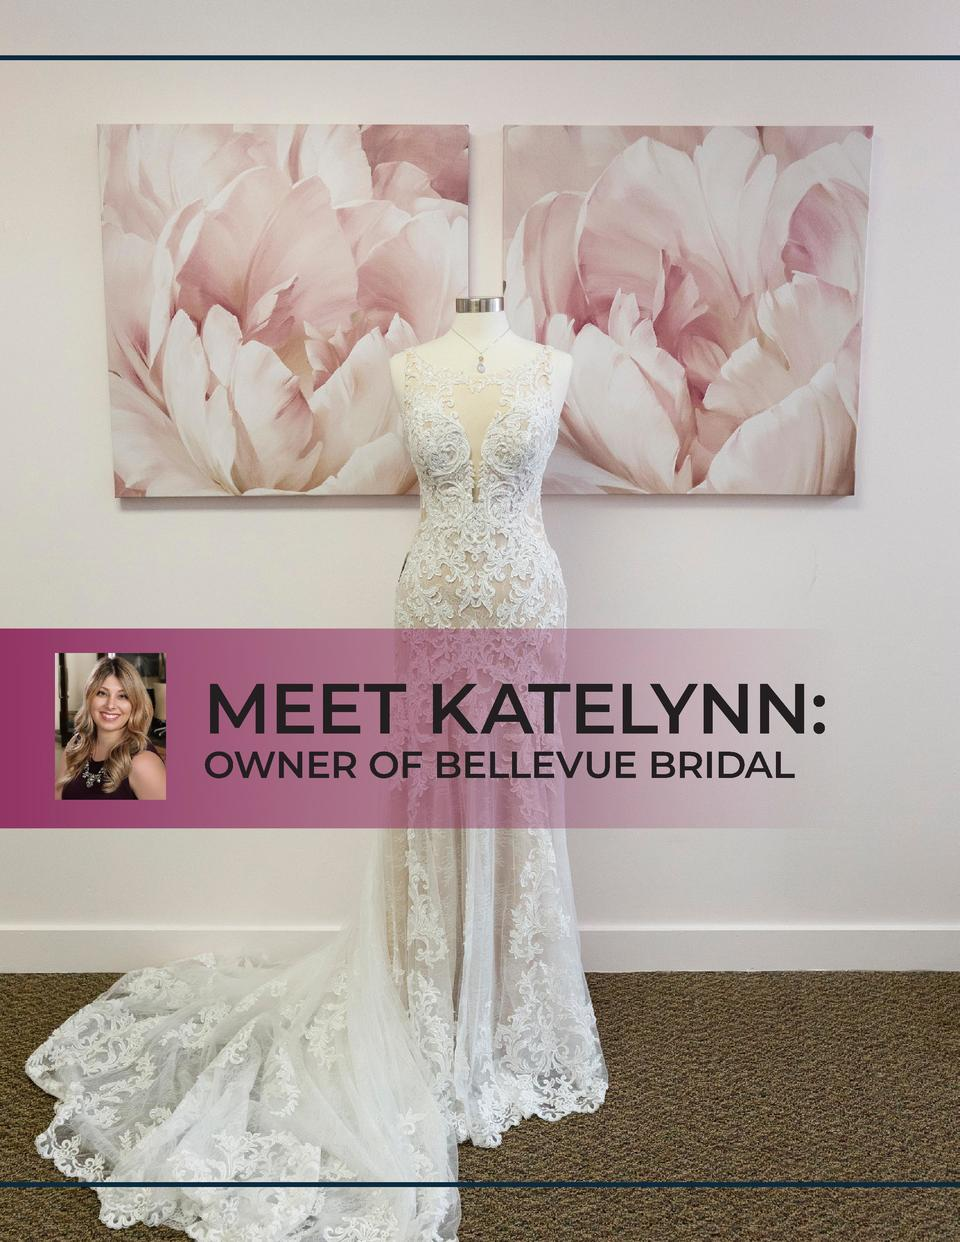 MEET KATELYNN  OWNER OF BELLEVUE BRIDAL